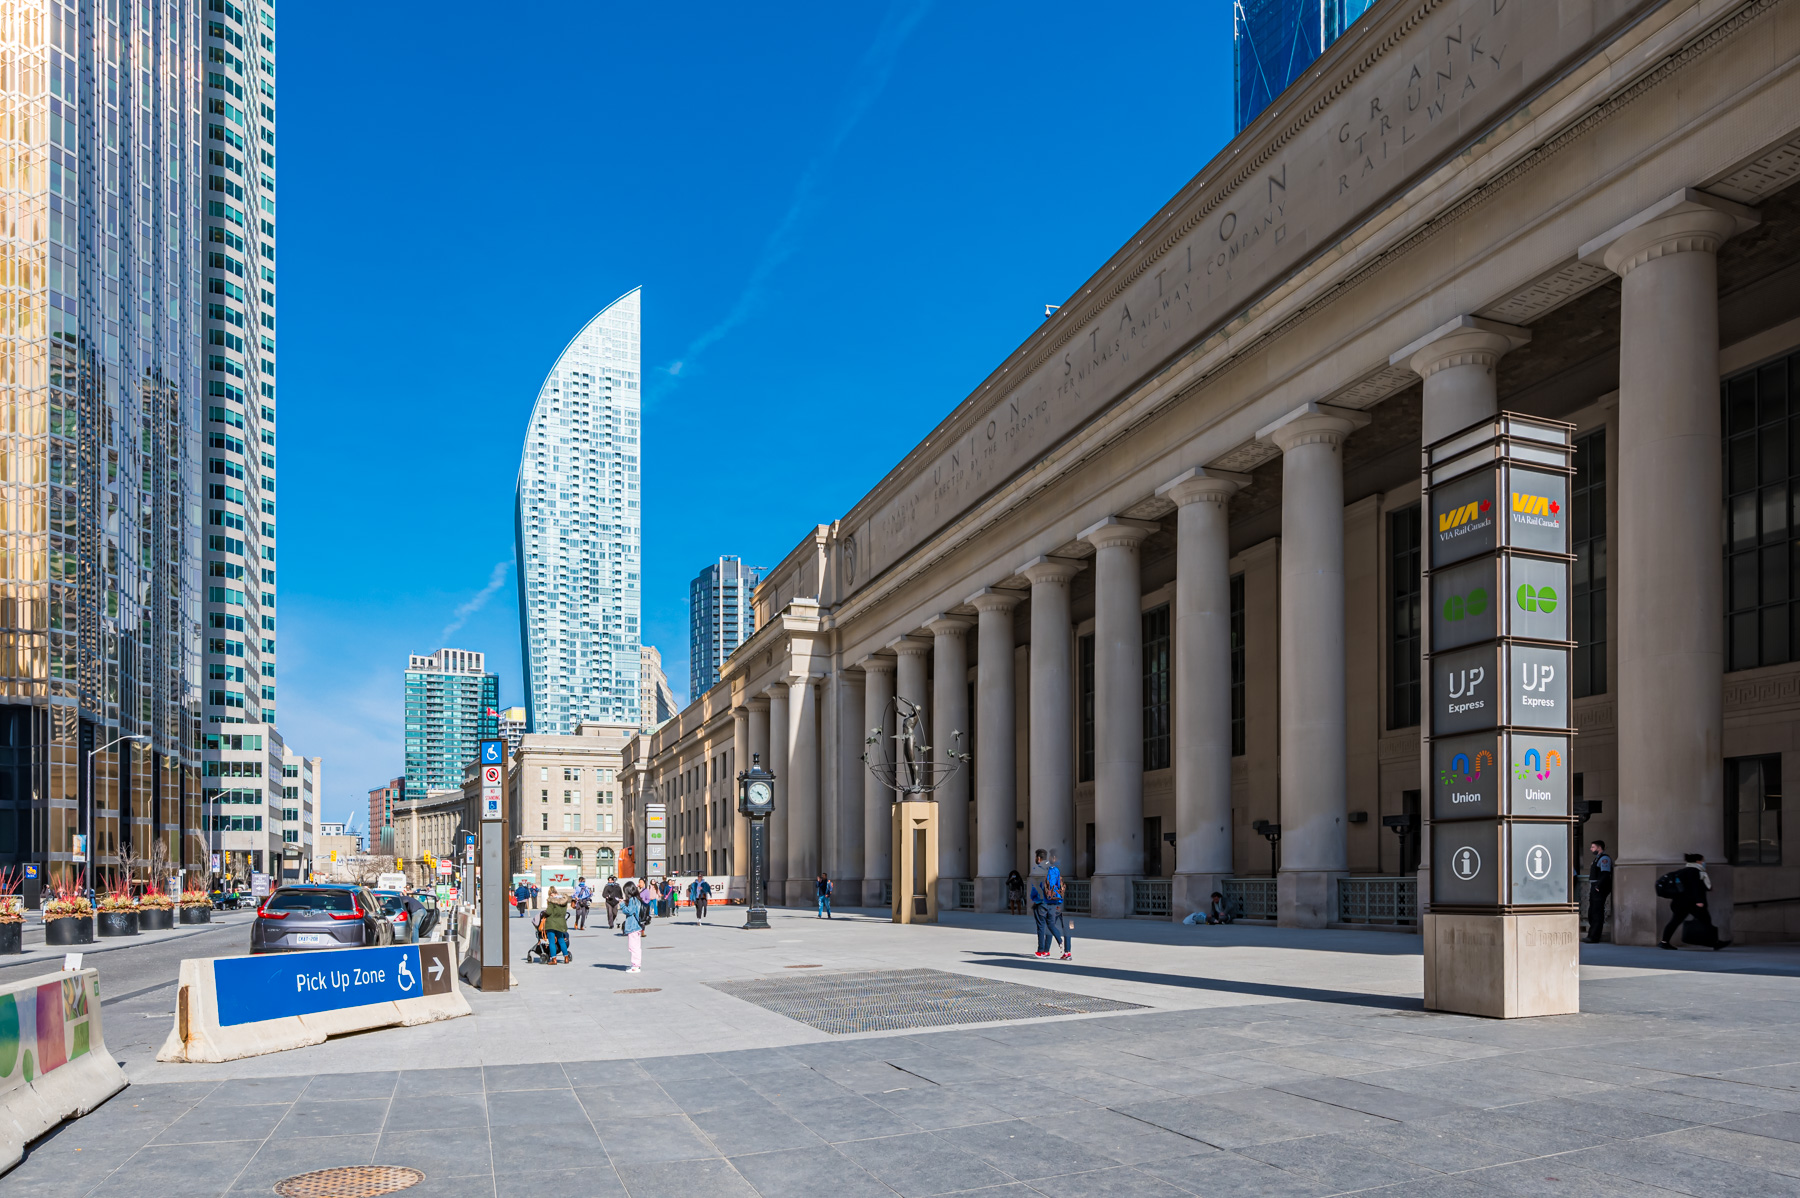 Exterior of Union Station Toronto with L Condos in background.